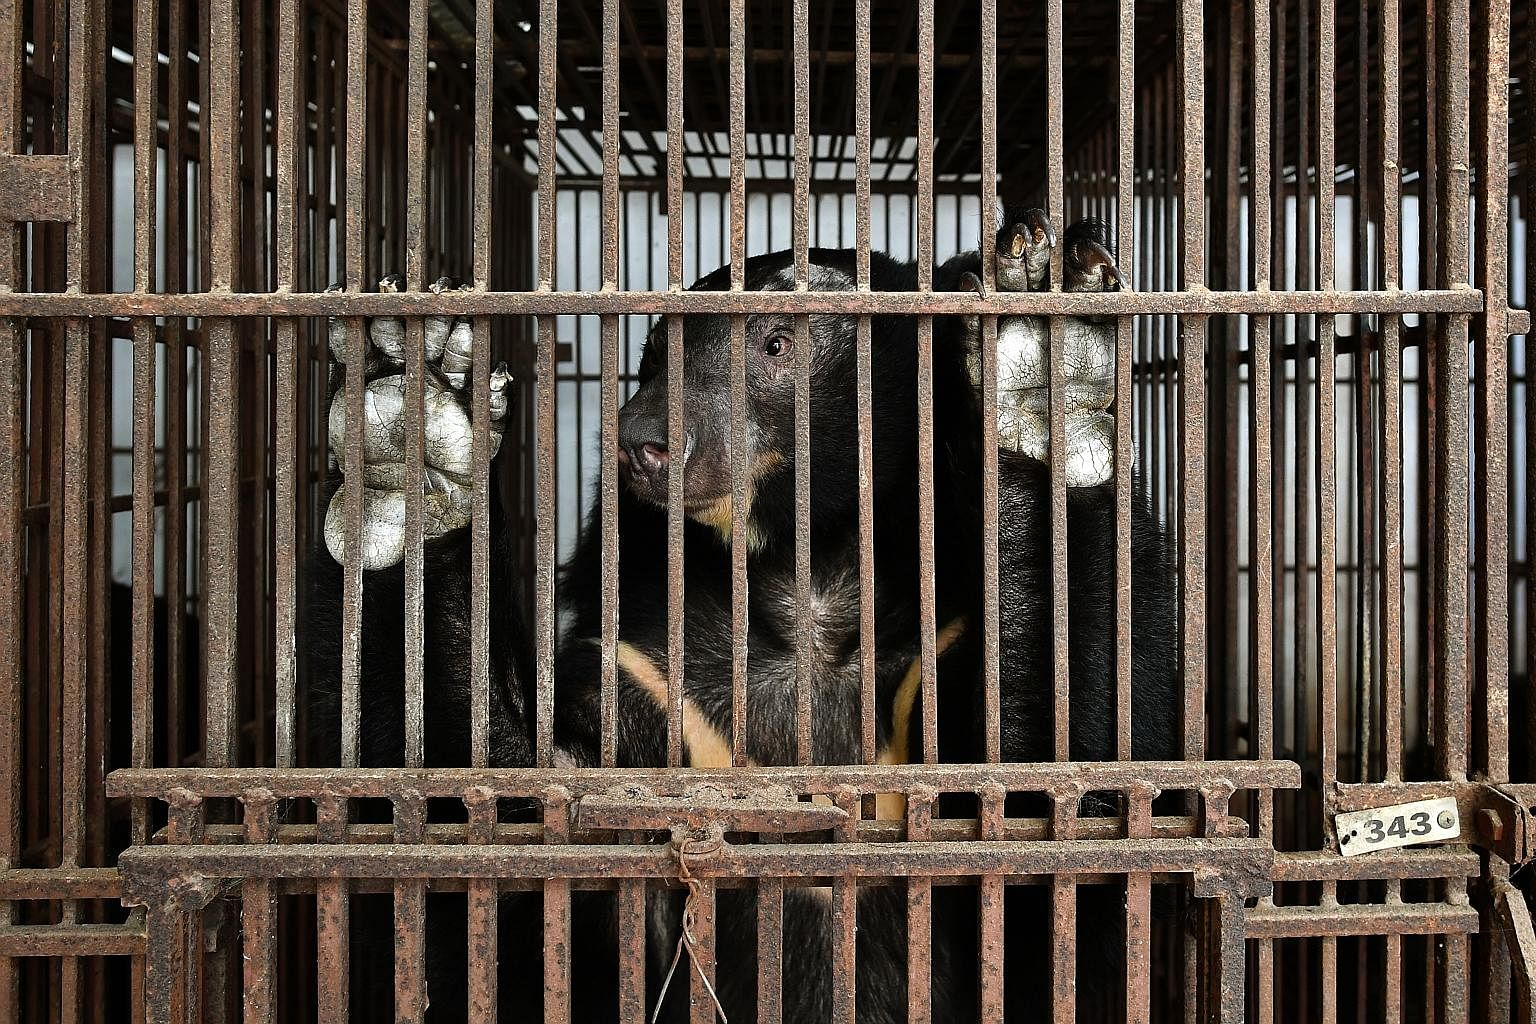 An Asiatic black bear caged in a village in Vietnam, where its bile is believed to help cure joint pains. A short film produced by two ST journalists uncovers the dark underbelly of South-east Asia's illegal wildlife trade.